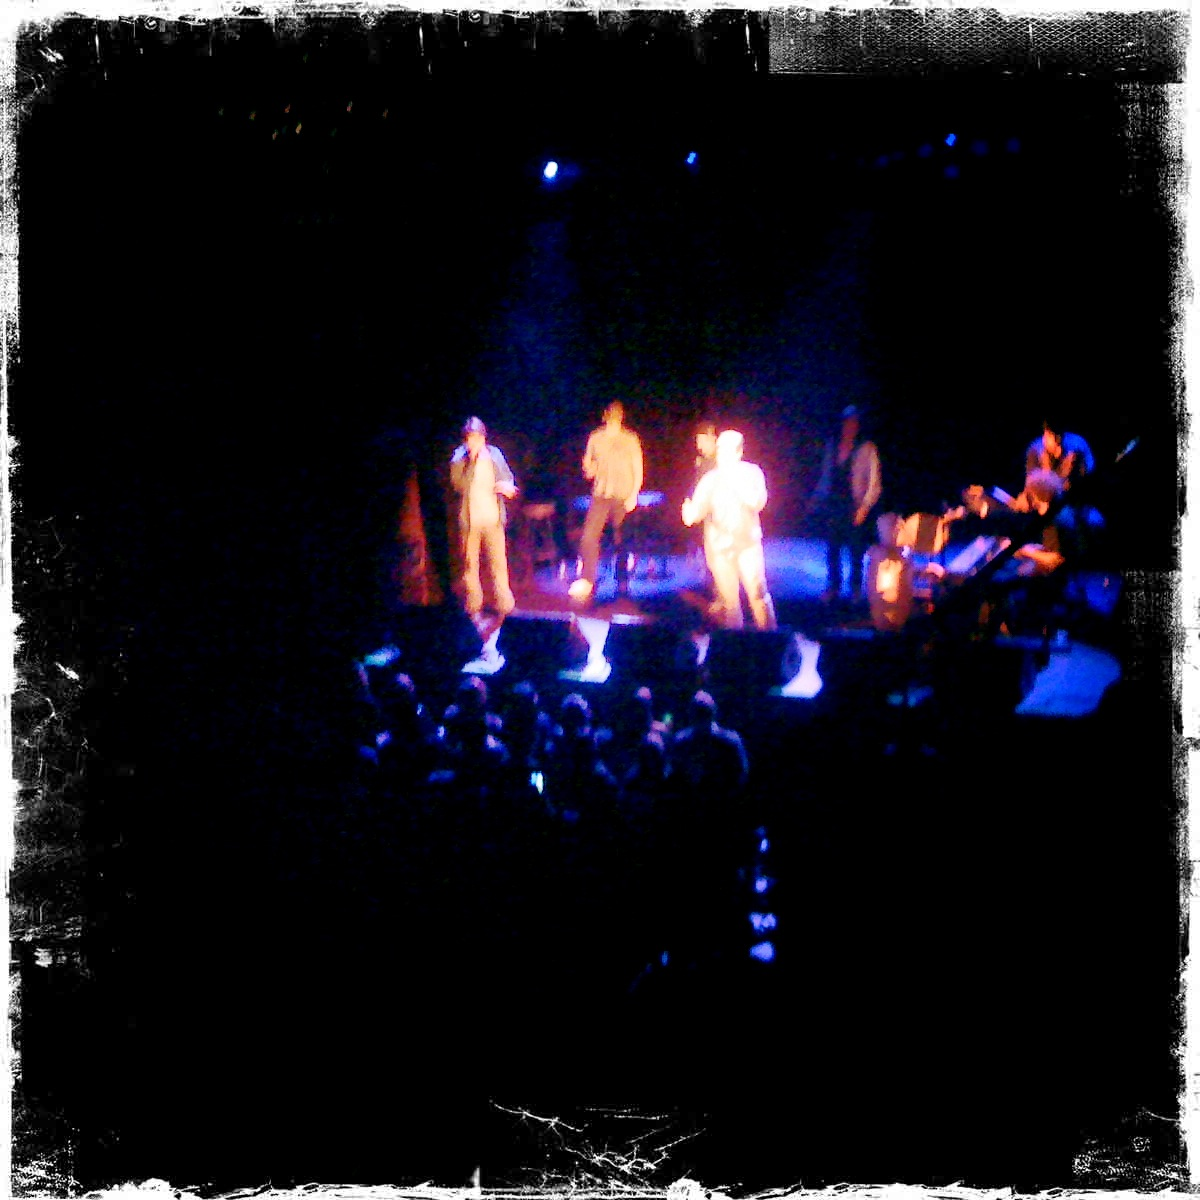 I know they look like bright blobby aliens, but it's really  Freestyle Love Supreme  performing last night at Irving Plaza